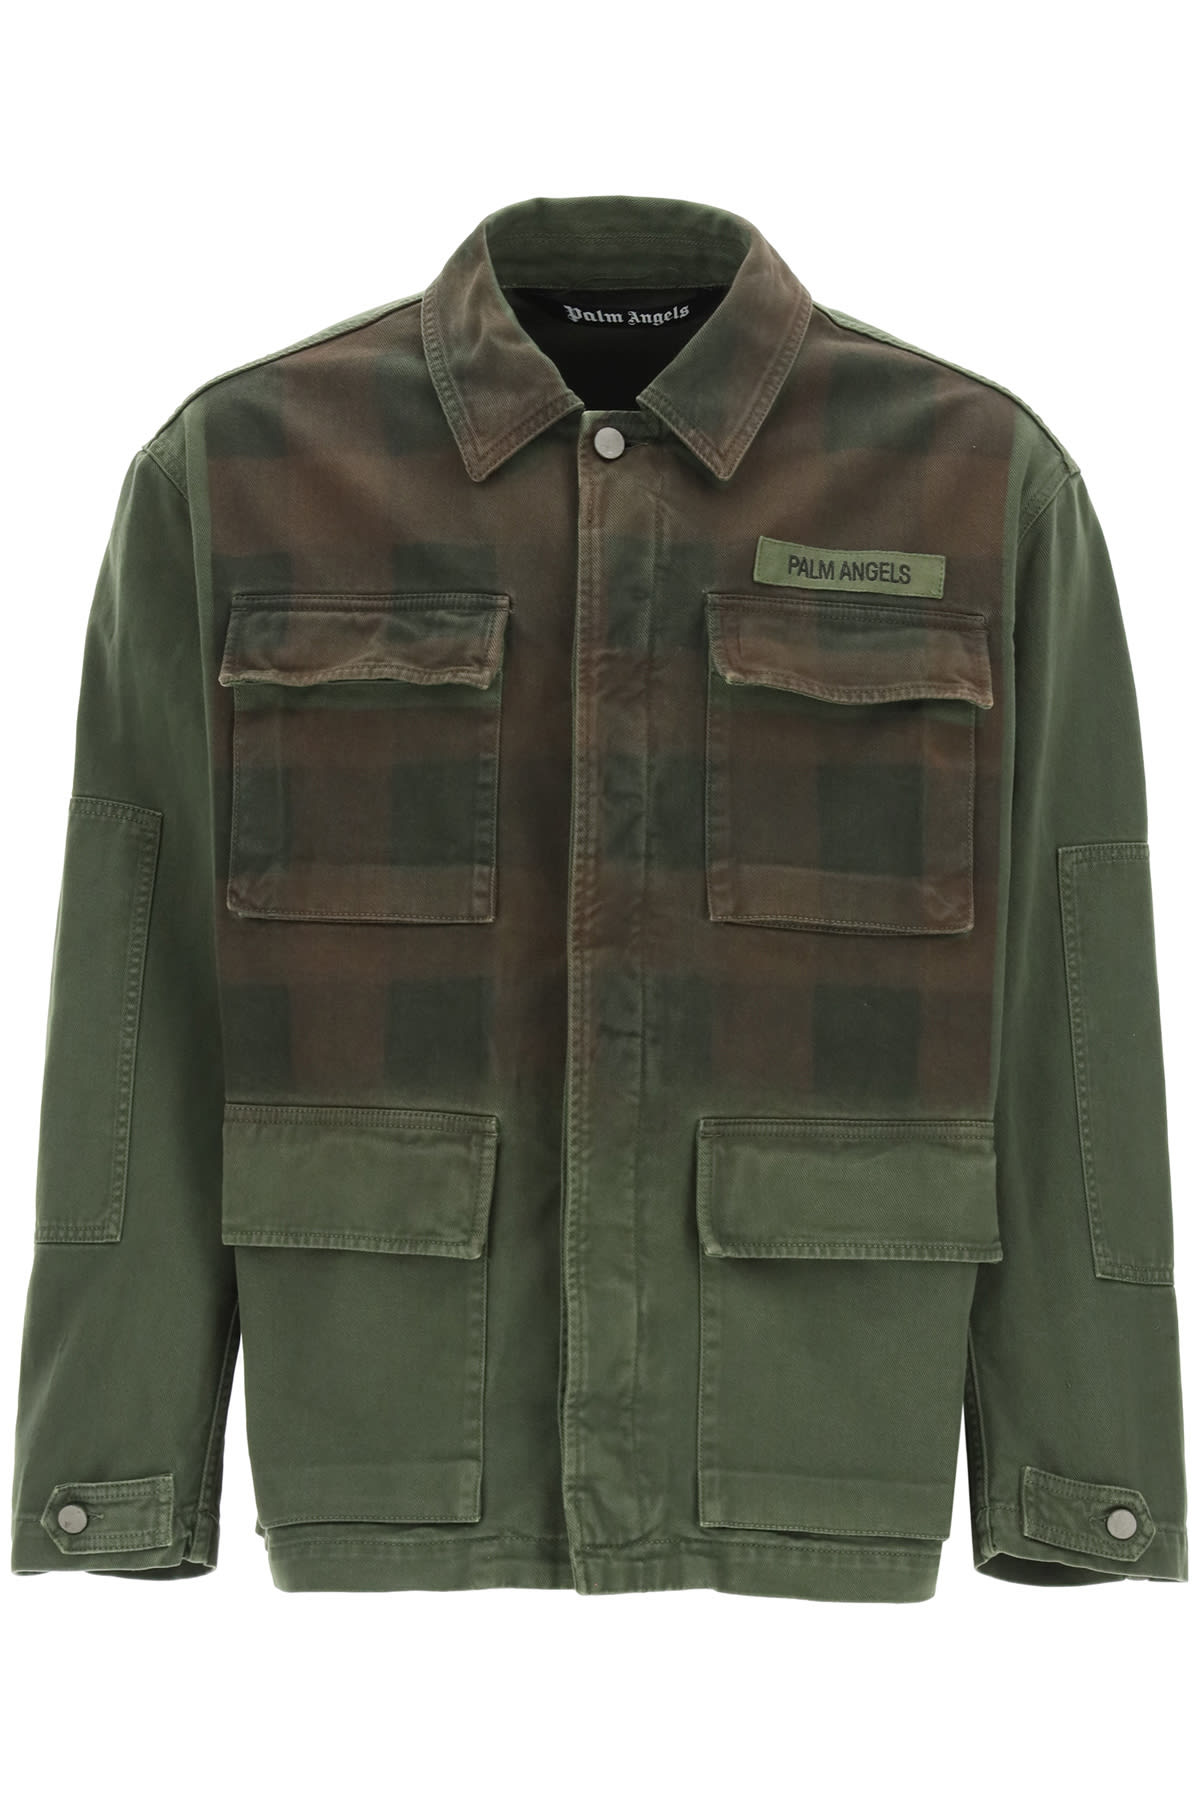 Palm Angels MILITARY BUFFALO JACKET WITH LOGO PRINT